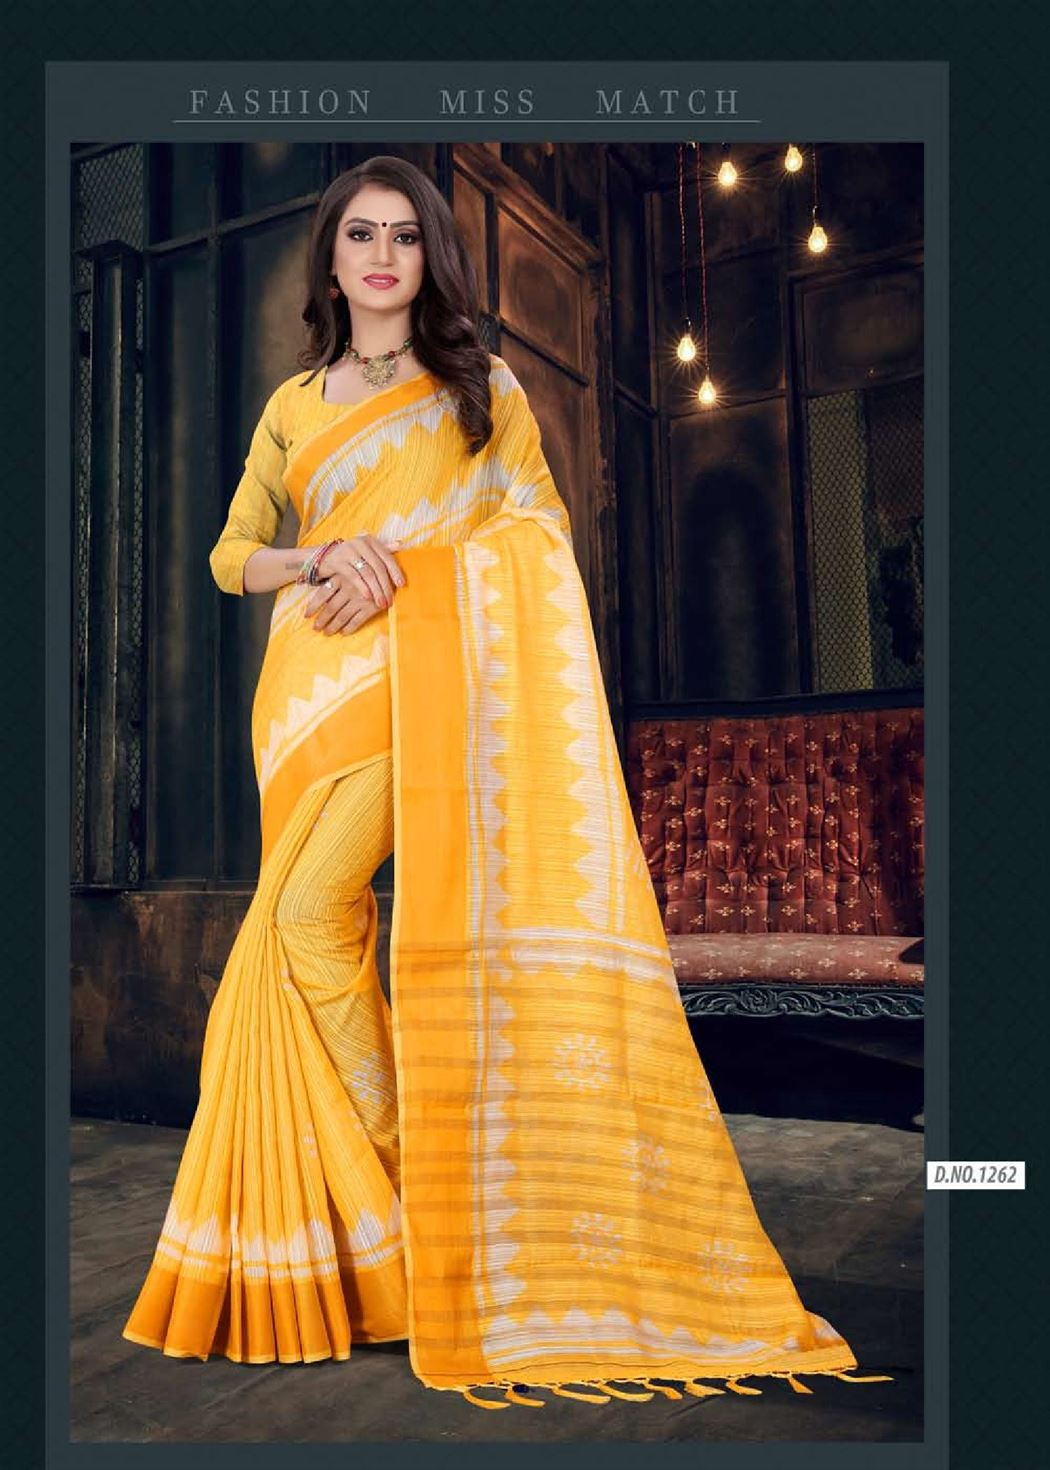 https://www.wholesaletextile.in/product-img/Sunaina-Weight-less-casual-wear-sarees-catalogue-31575710535.jpg